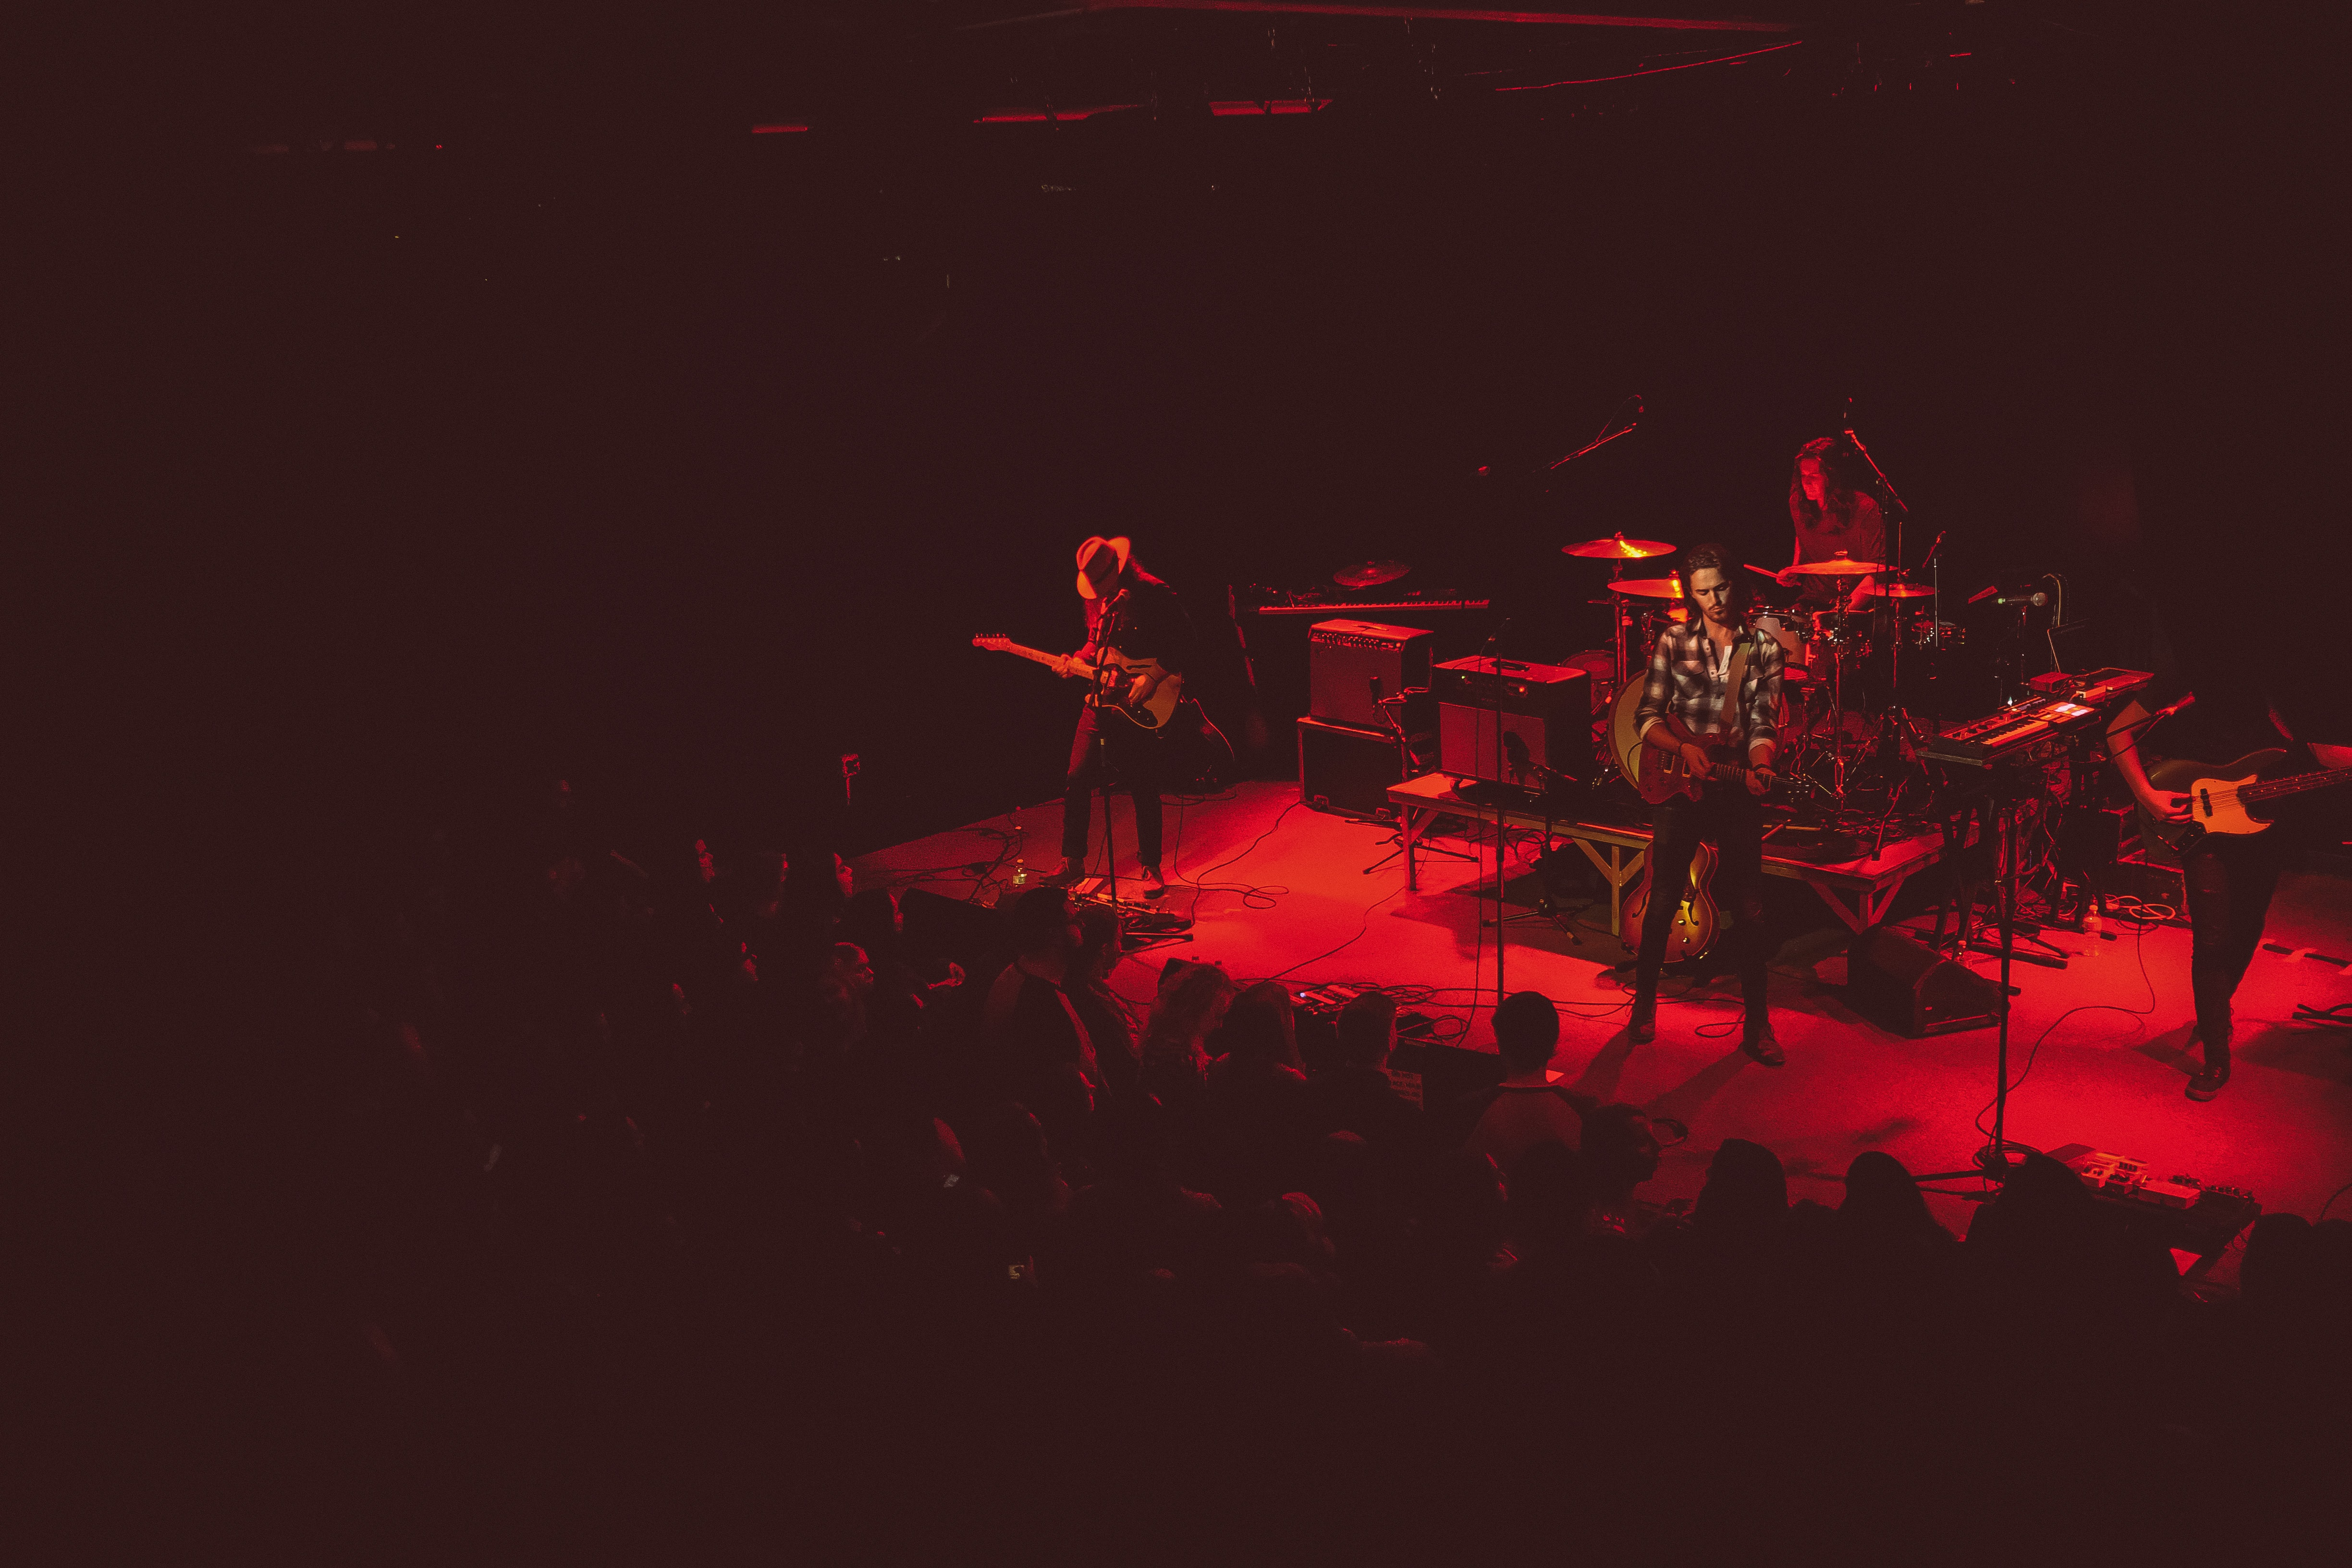 A band performing on stage under red light in Metro Music Hall